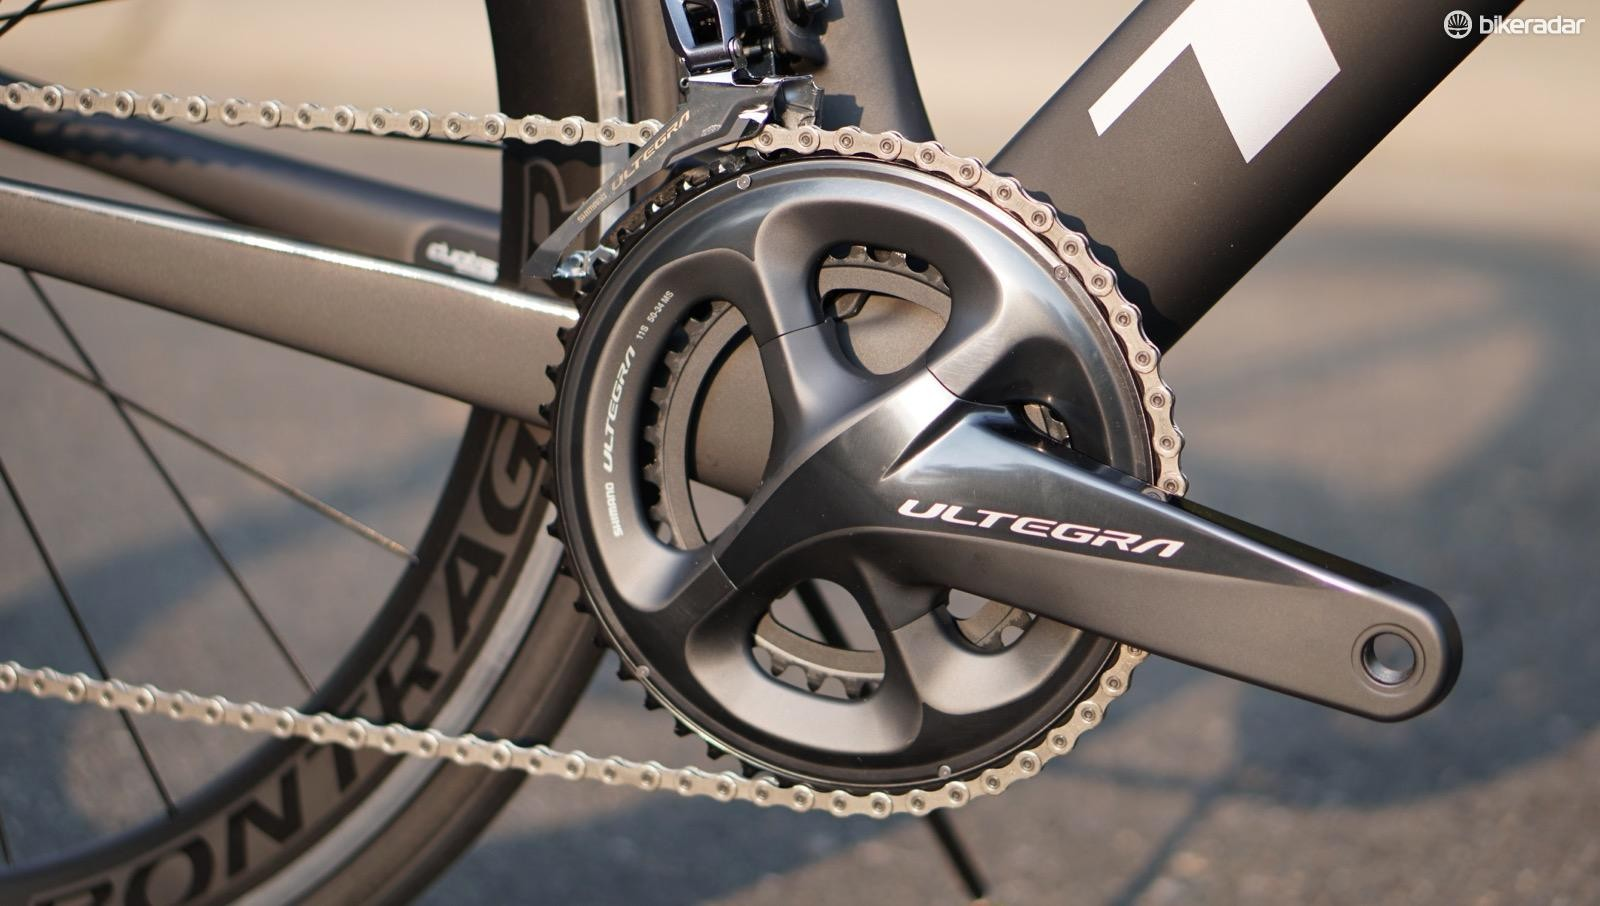 Racers interested in the Madone 9.0 might want to swap out the compact 50/34 crank